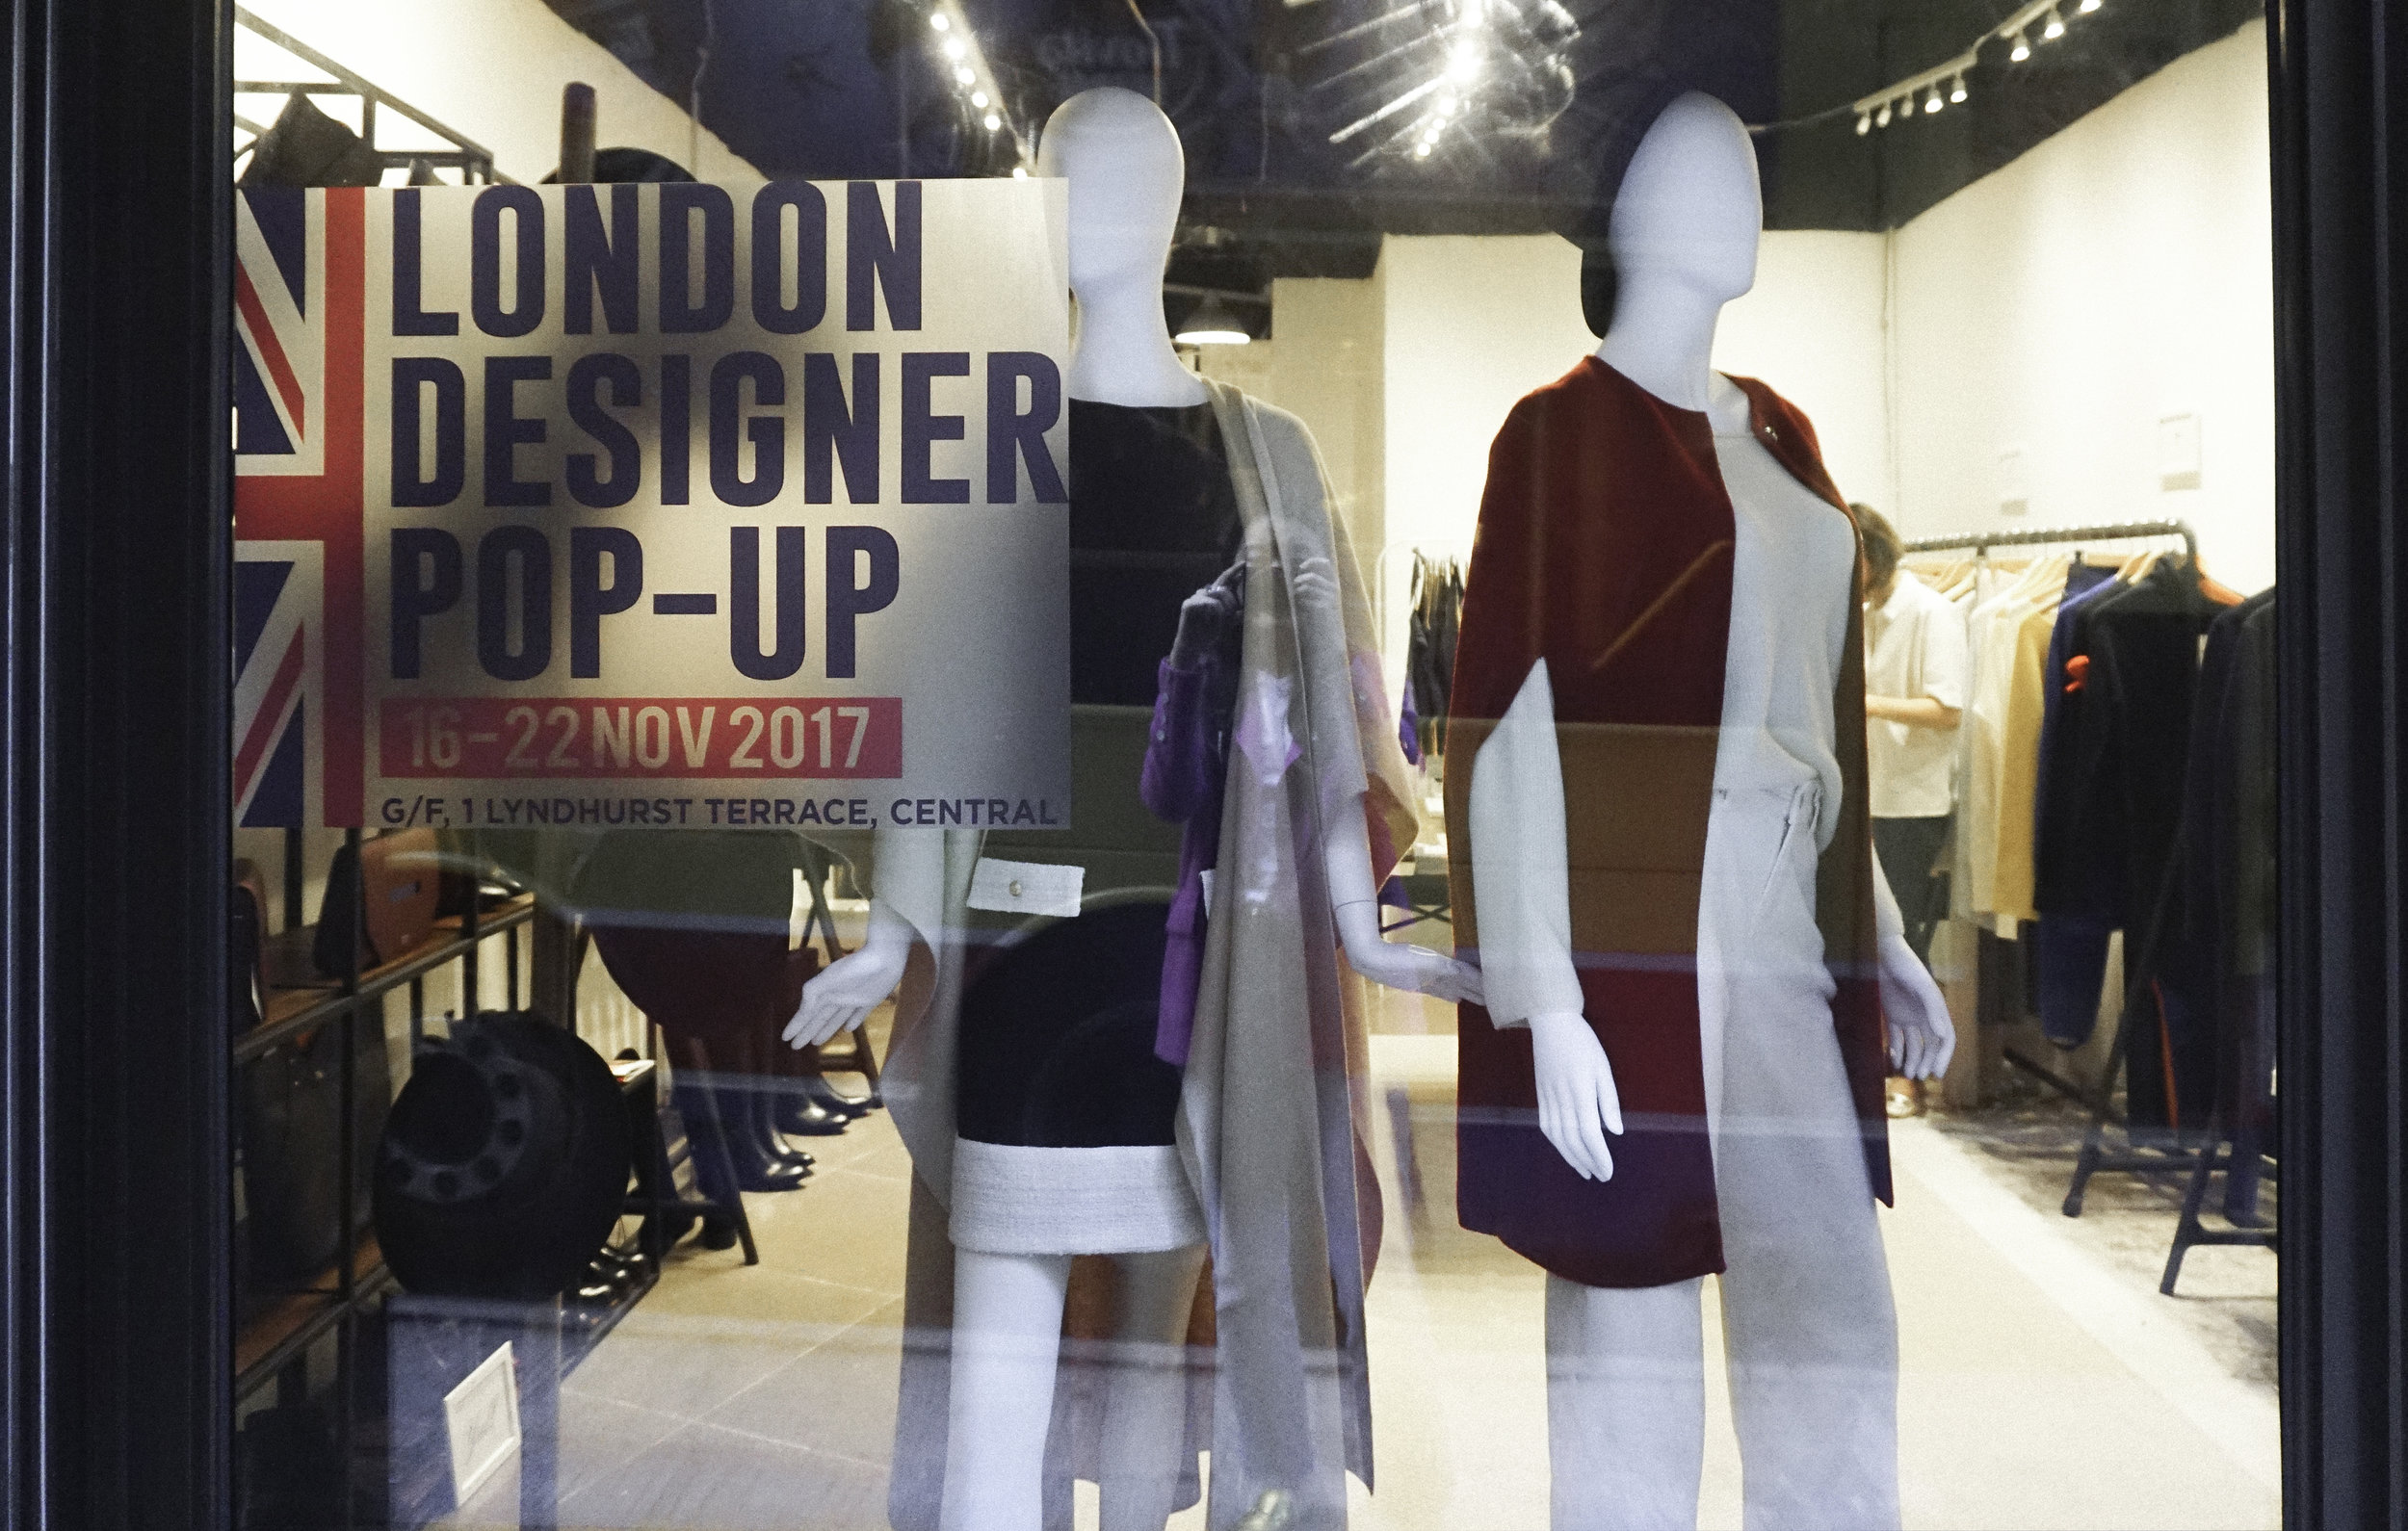 London designer popup Hong Kong